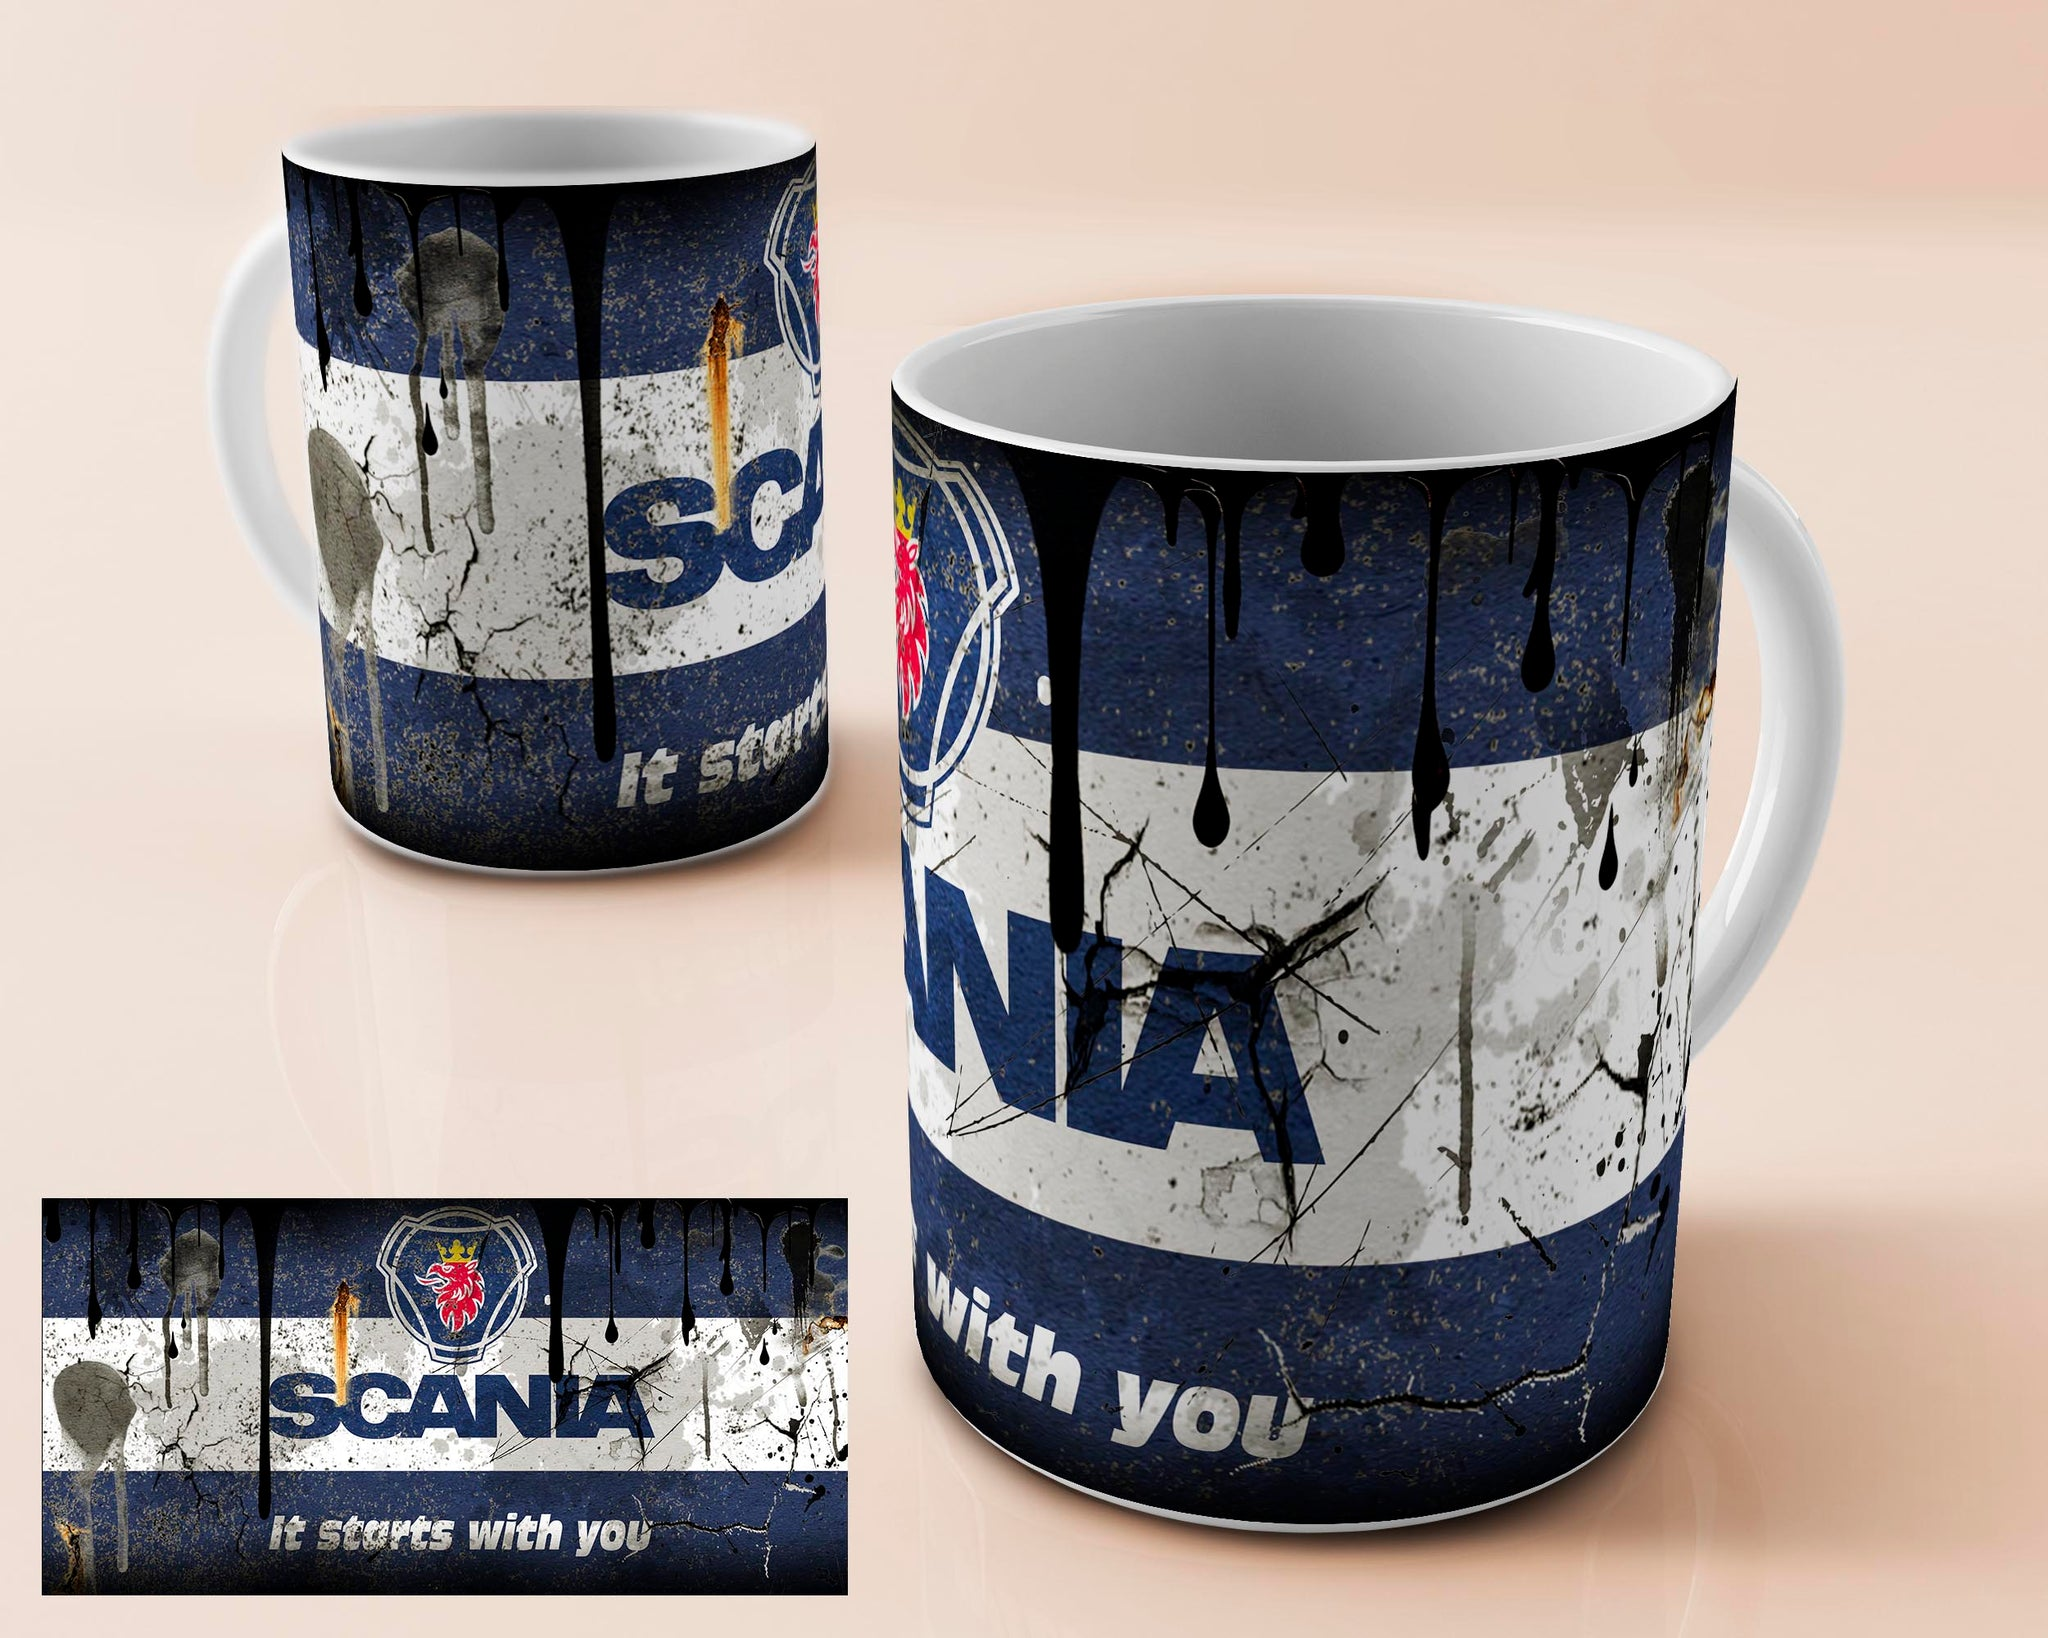 Scania vintage oil can mug